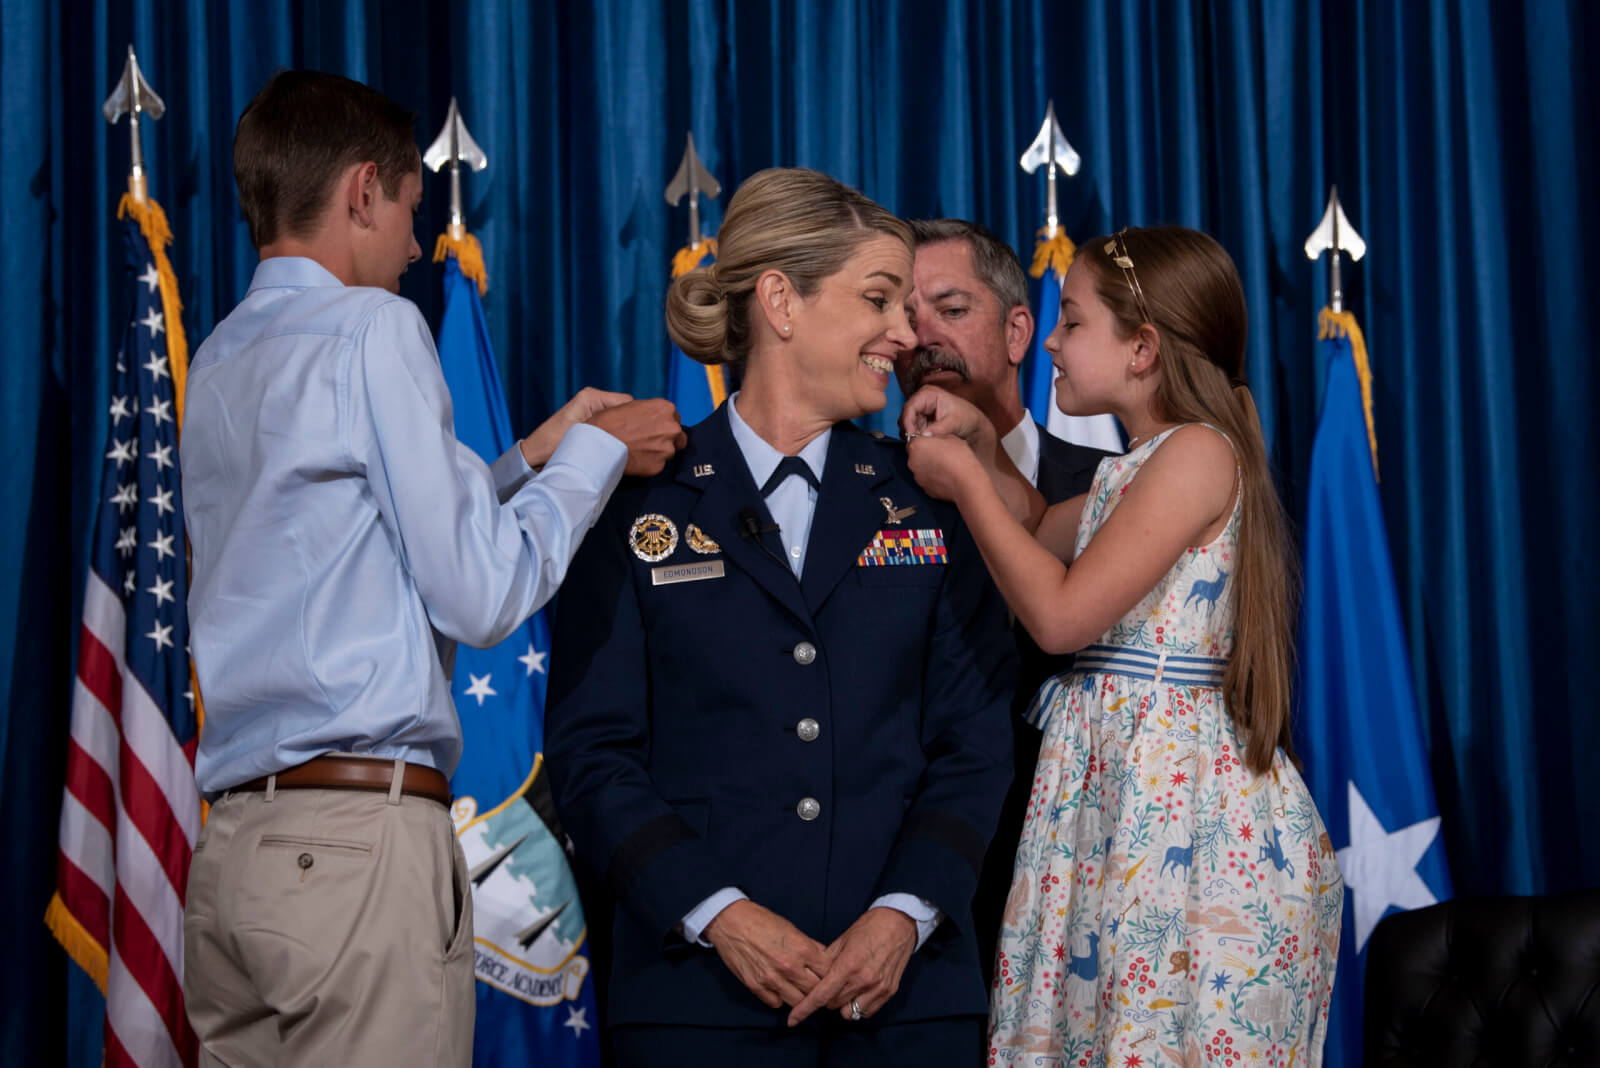 Maj. Gen. Michele Edmondson's family pins on her second star during her promotion ceremony from brigadier general to major general, Sept. 3, 2020.